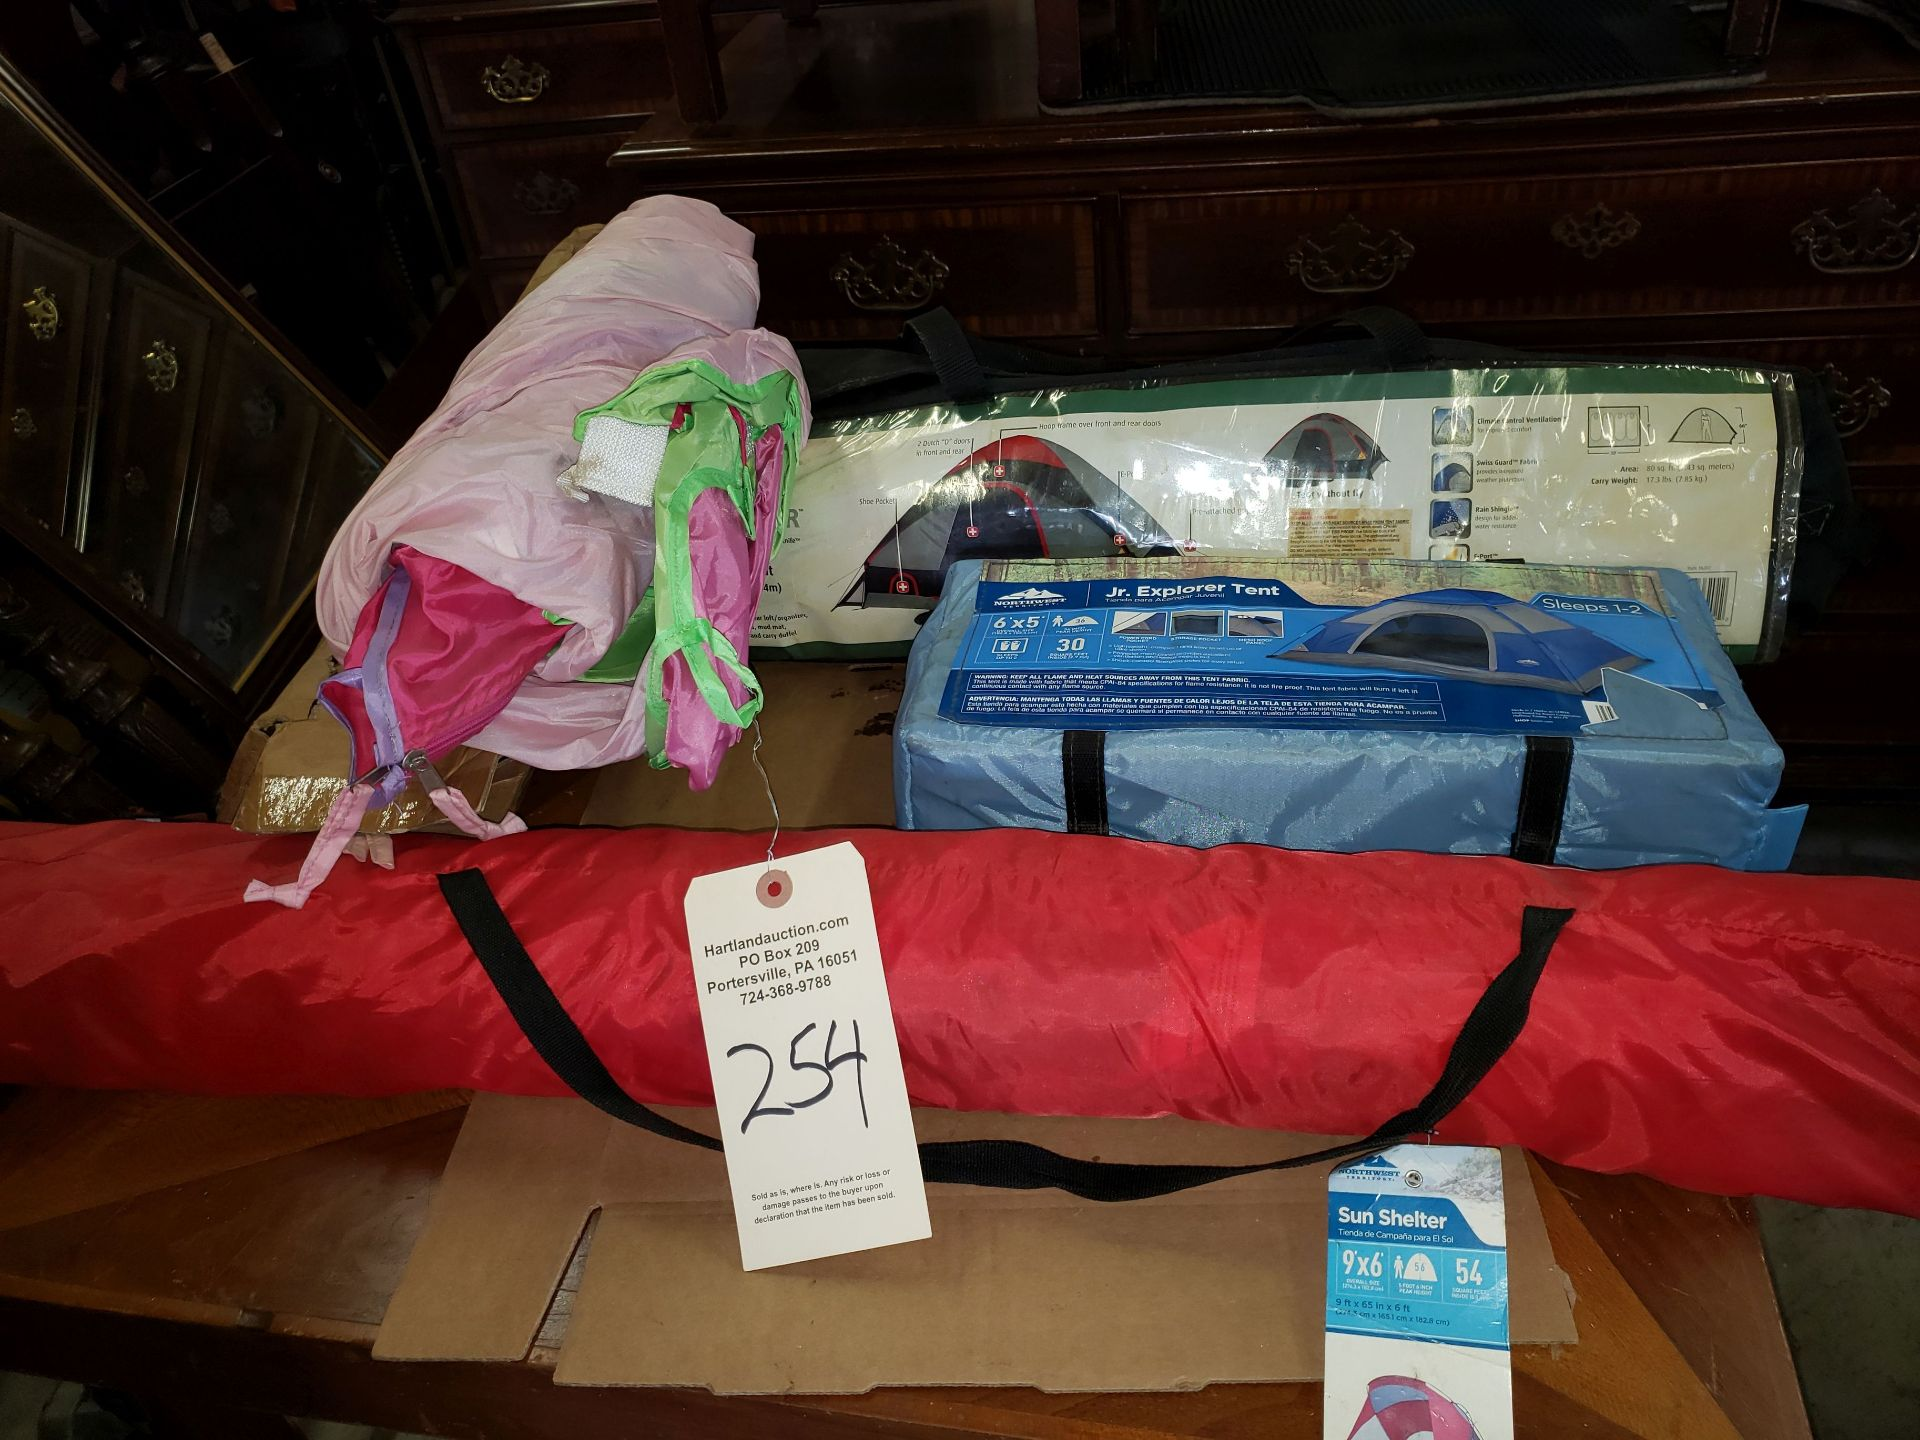 Lot 254 - 3 TENTS AND NEW SUN SHELTER